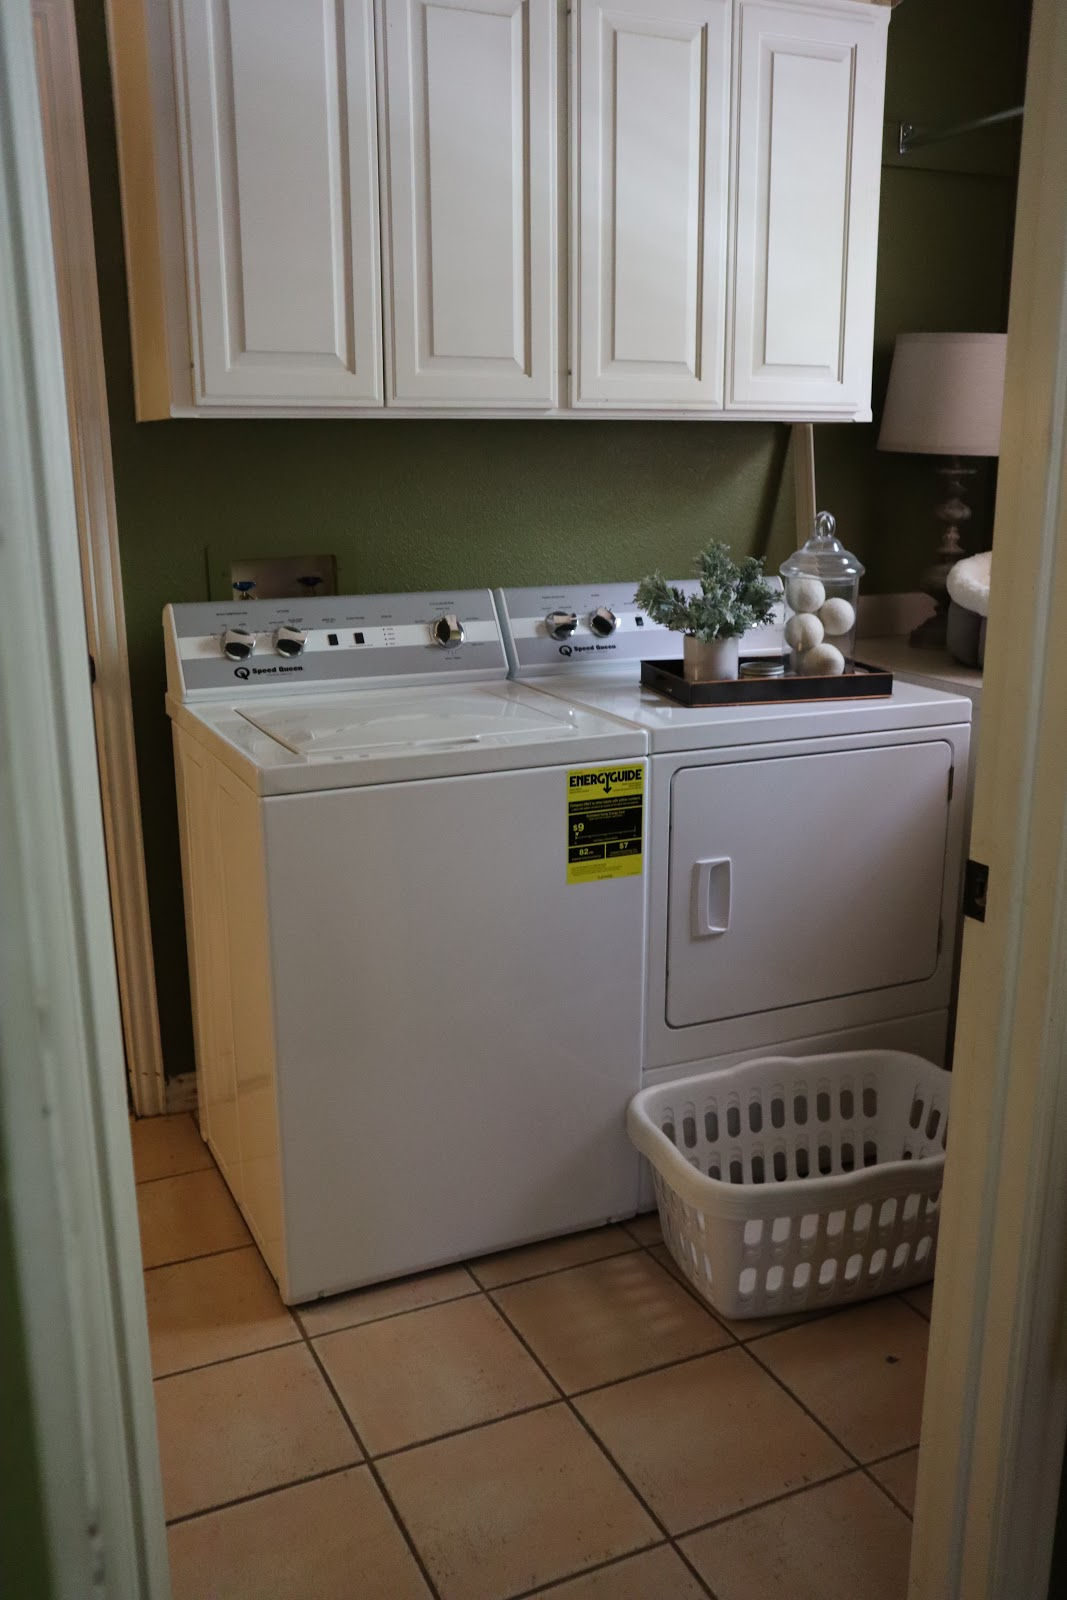 Momfessionals Speed Queen Washer And Dryer Review